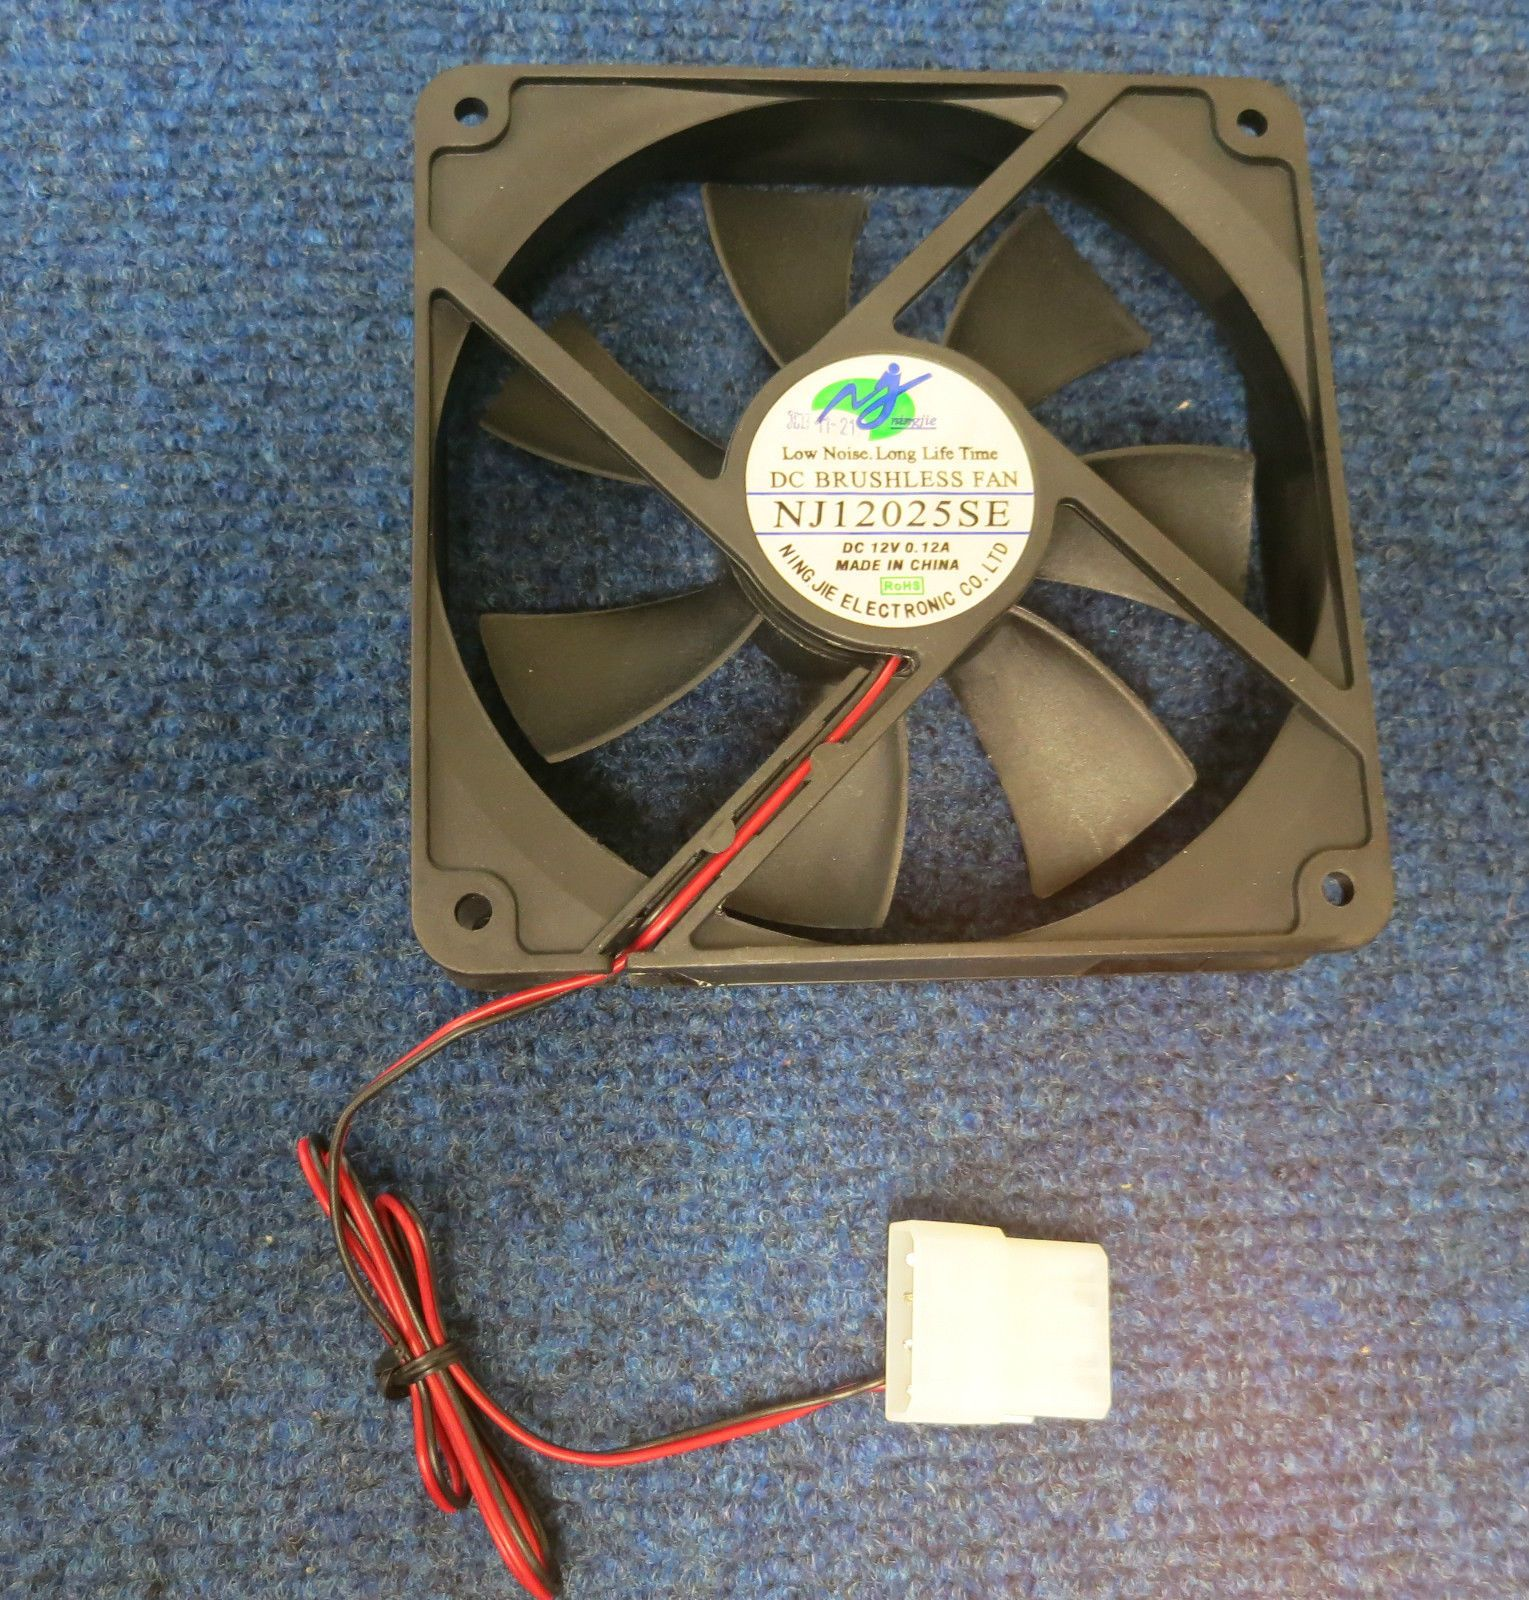 hight resolution of dc 12v 0 12a 2 wire 2 pin 110mm 120x120x25mm server cooling fan nj12025se 38067 p jpg